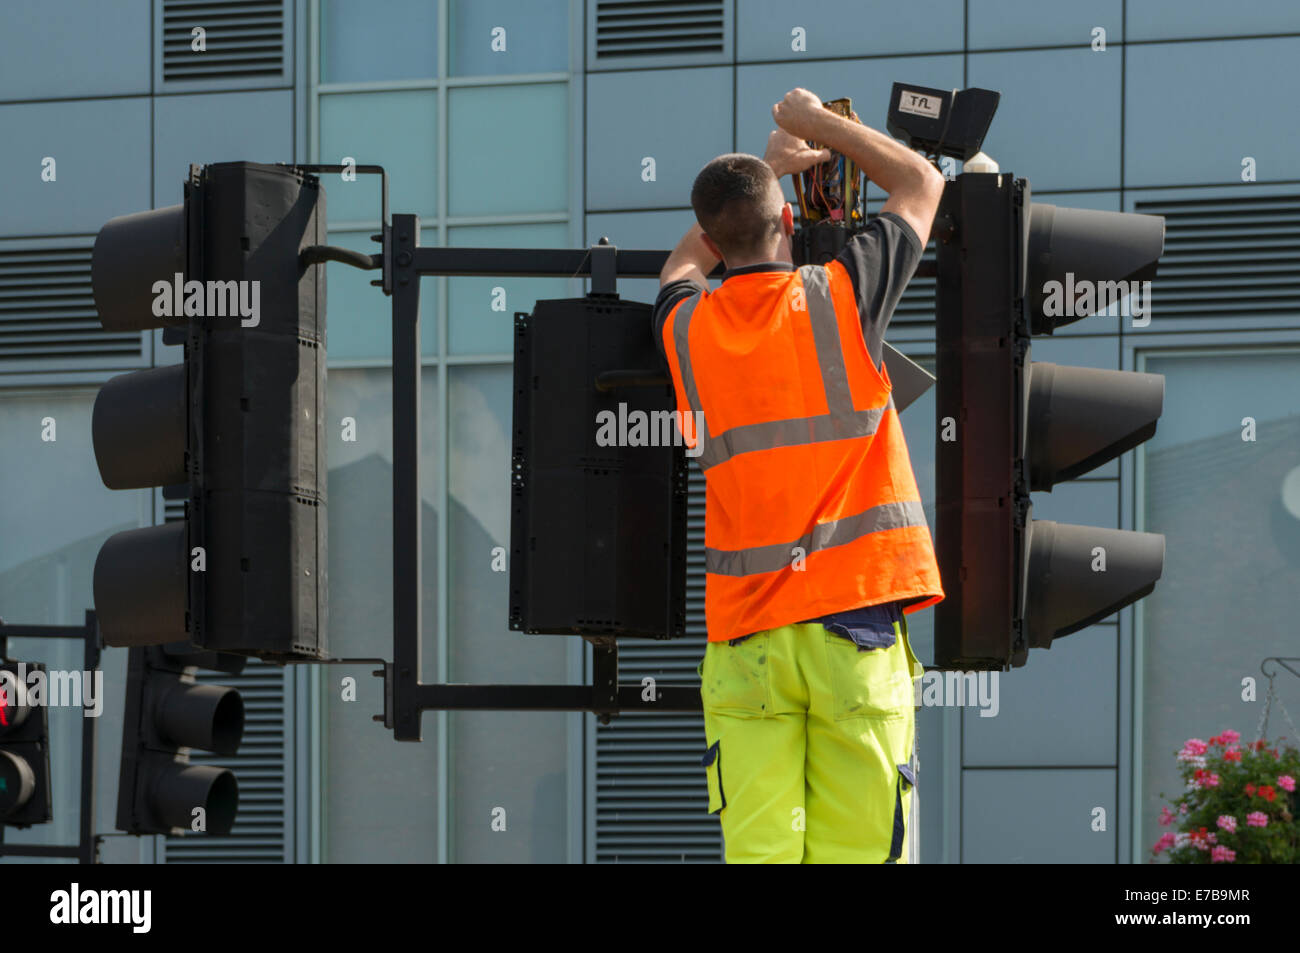 Engineer fixing a traffic light - Stock Image